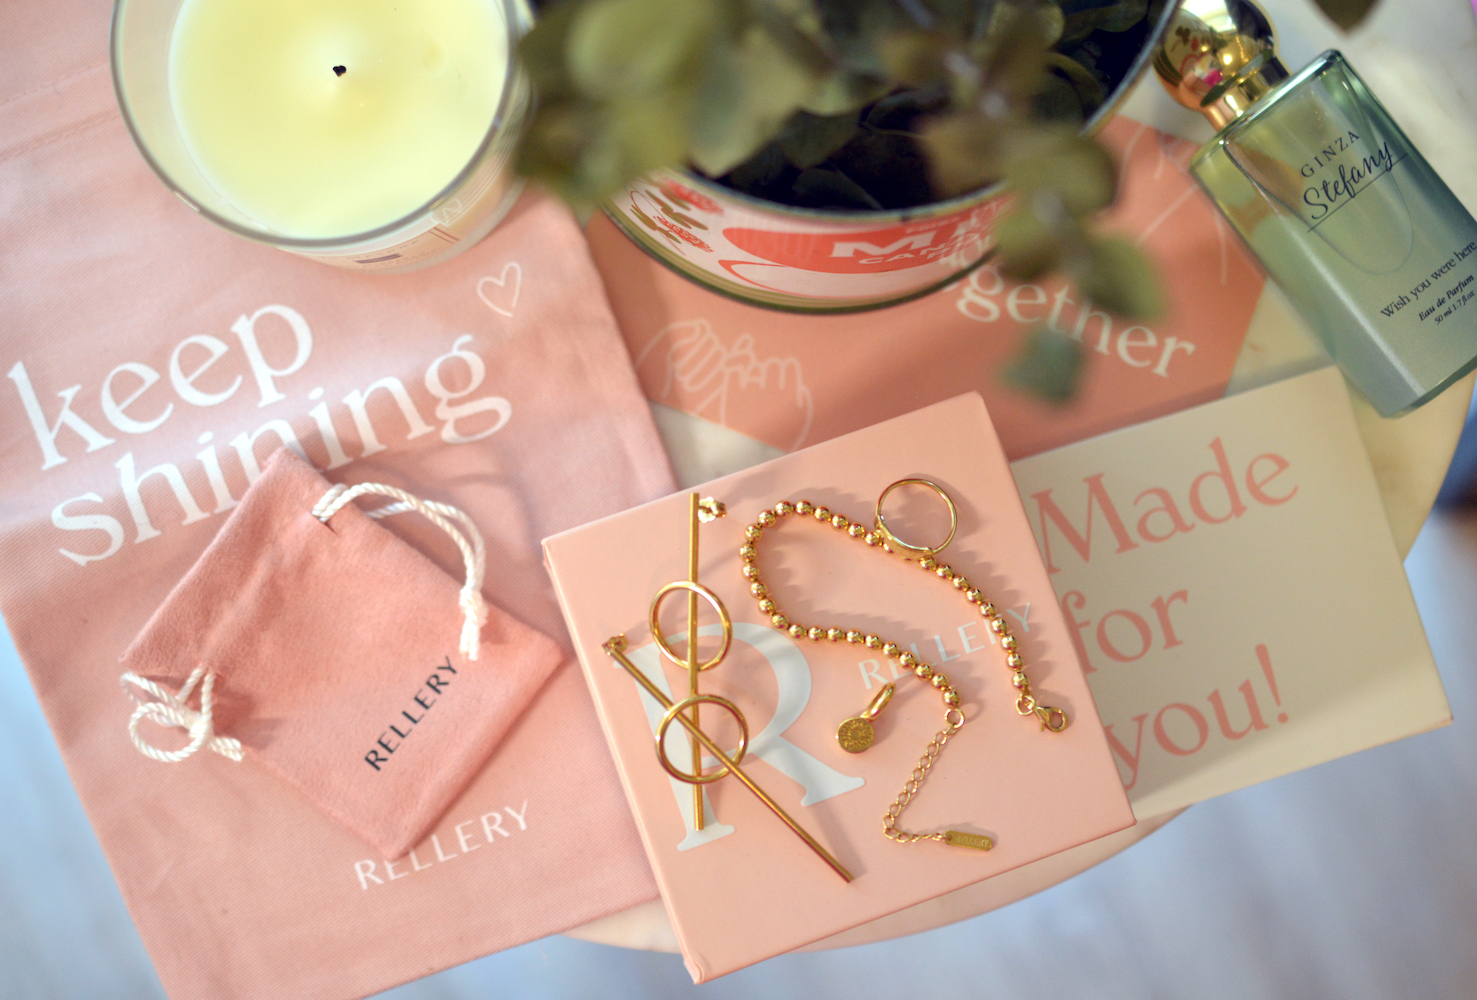 Rellery Review Gold Jewellery